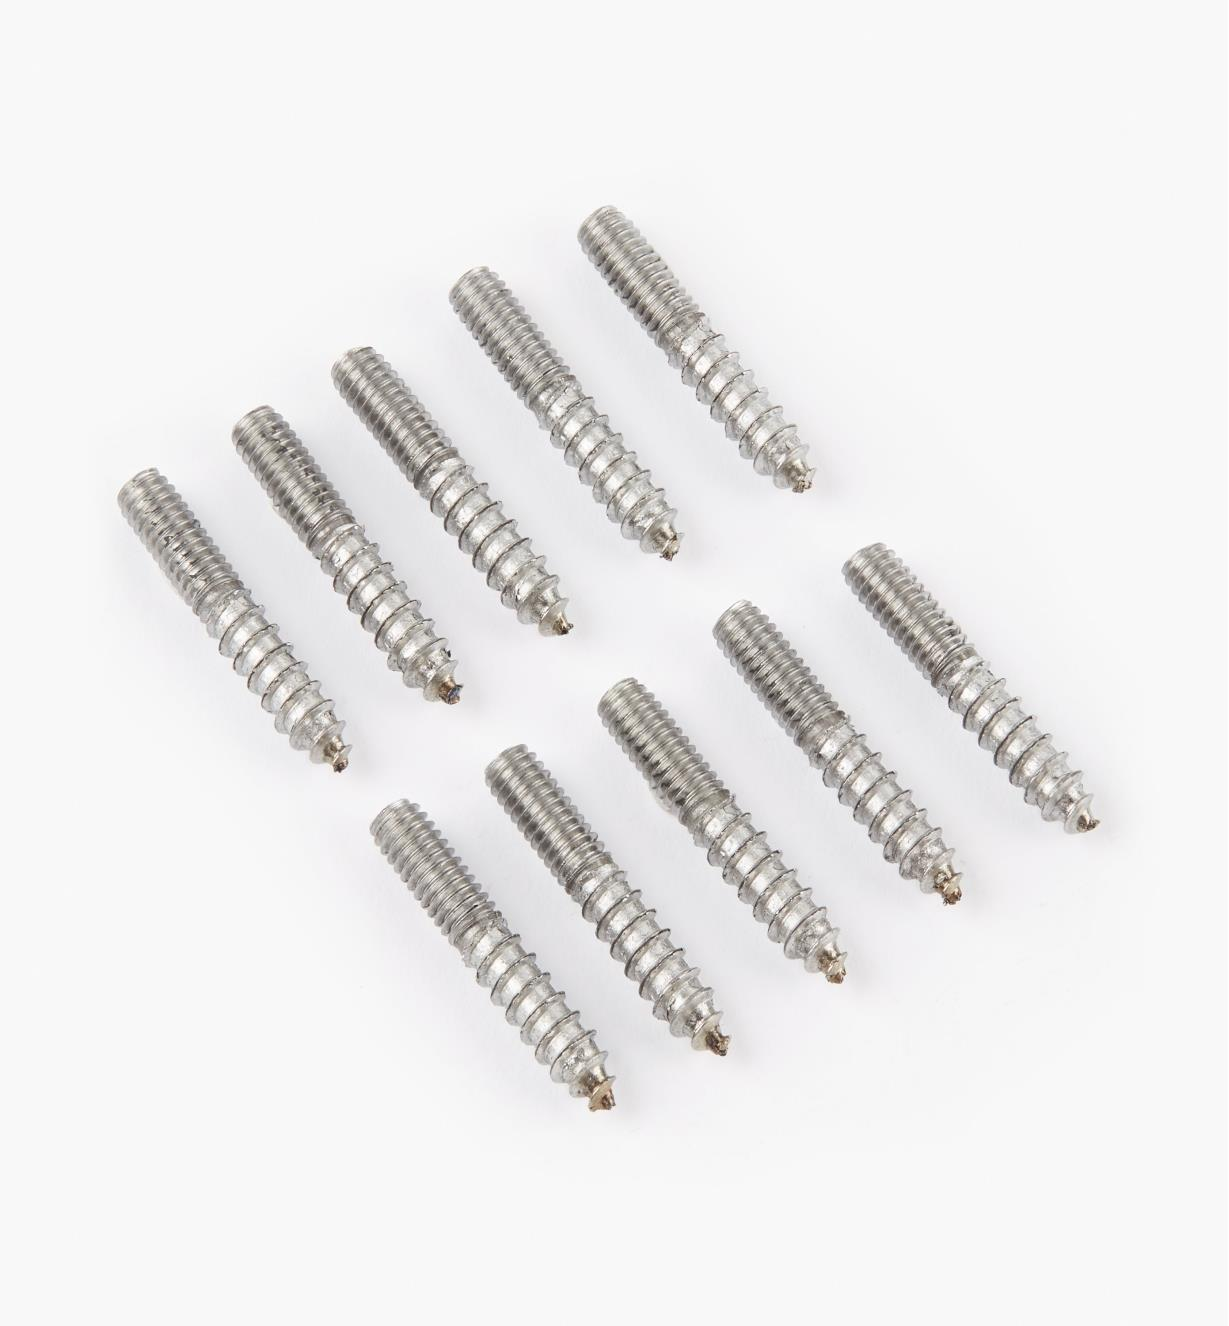 "00N3208 - 8 32 x 1"" Hanger Bolts, pkg. of 10"